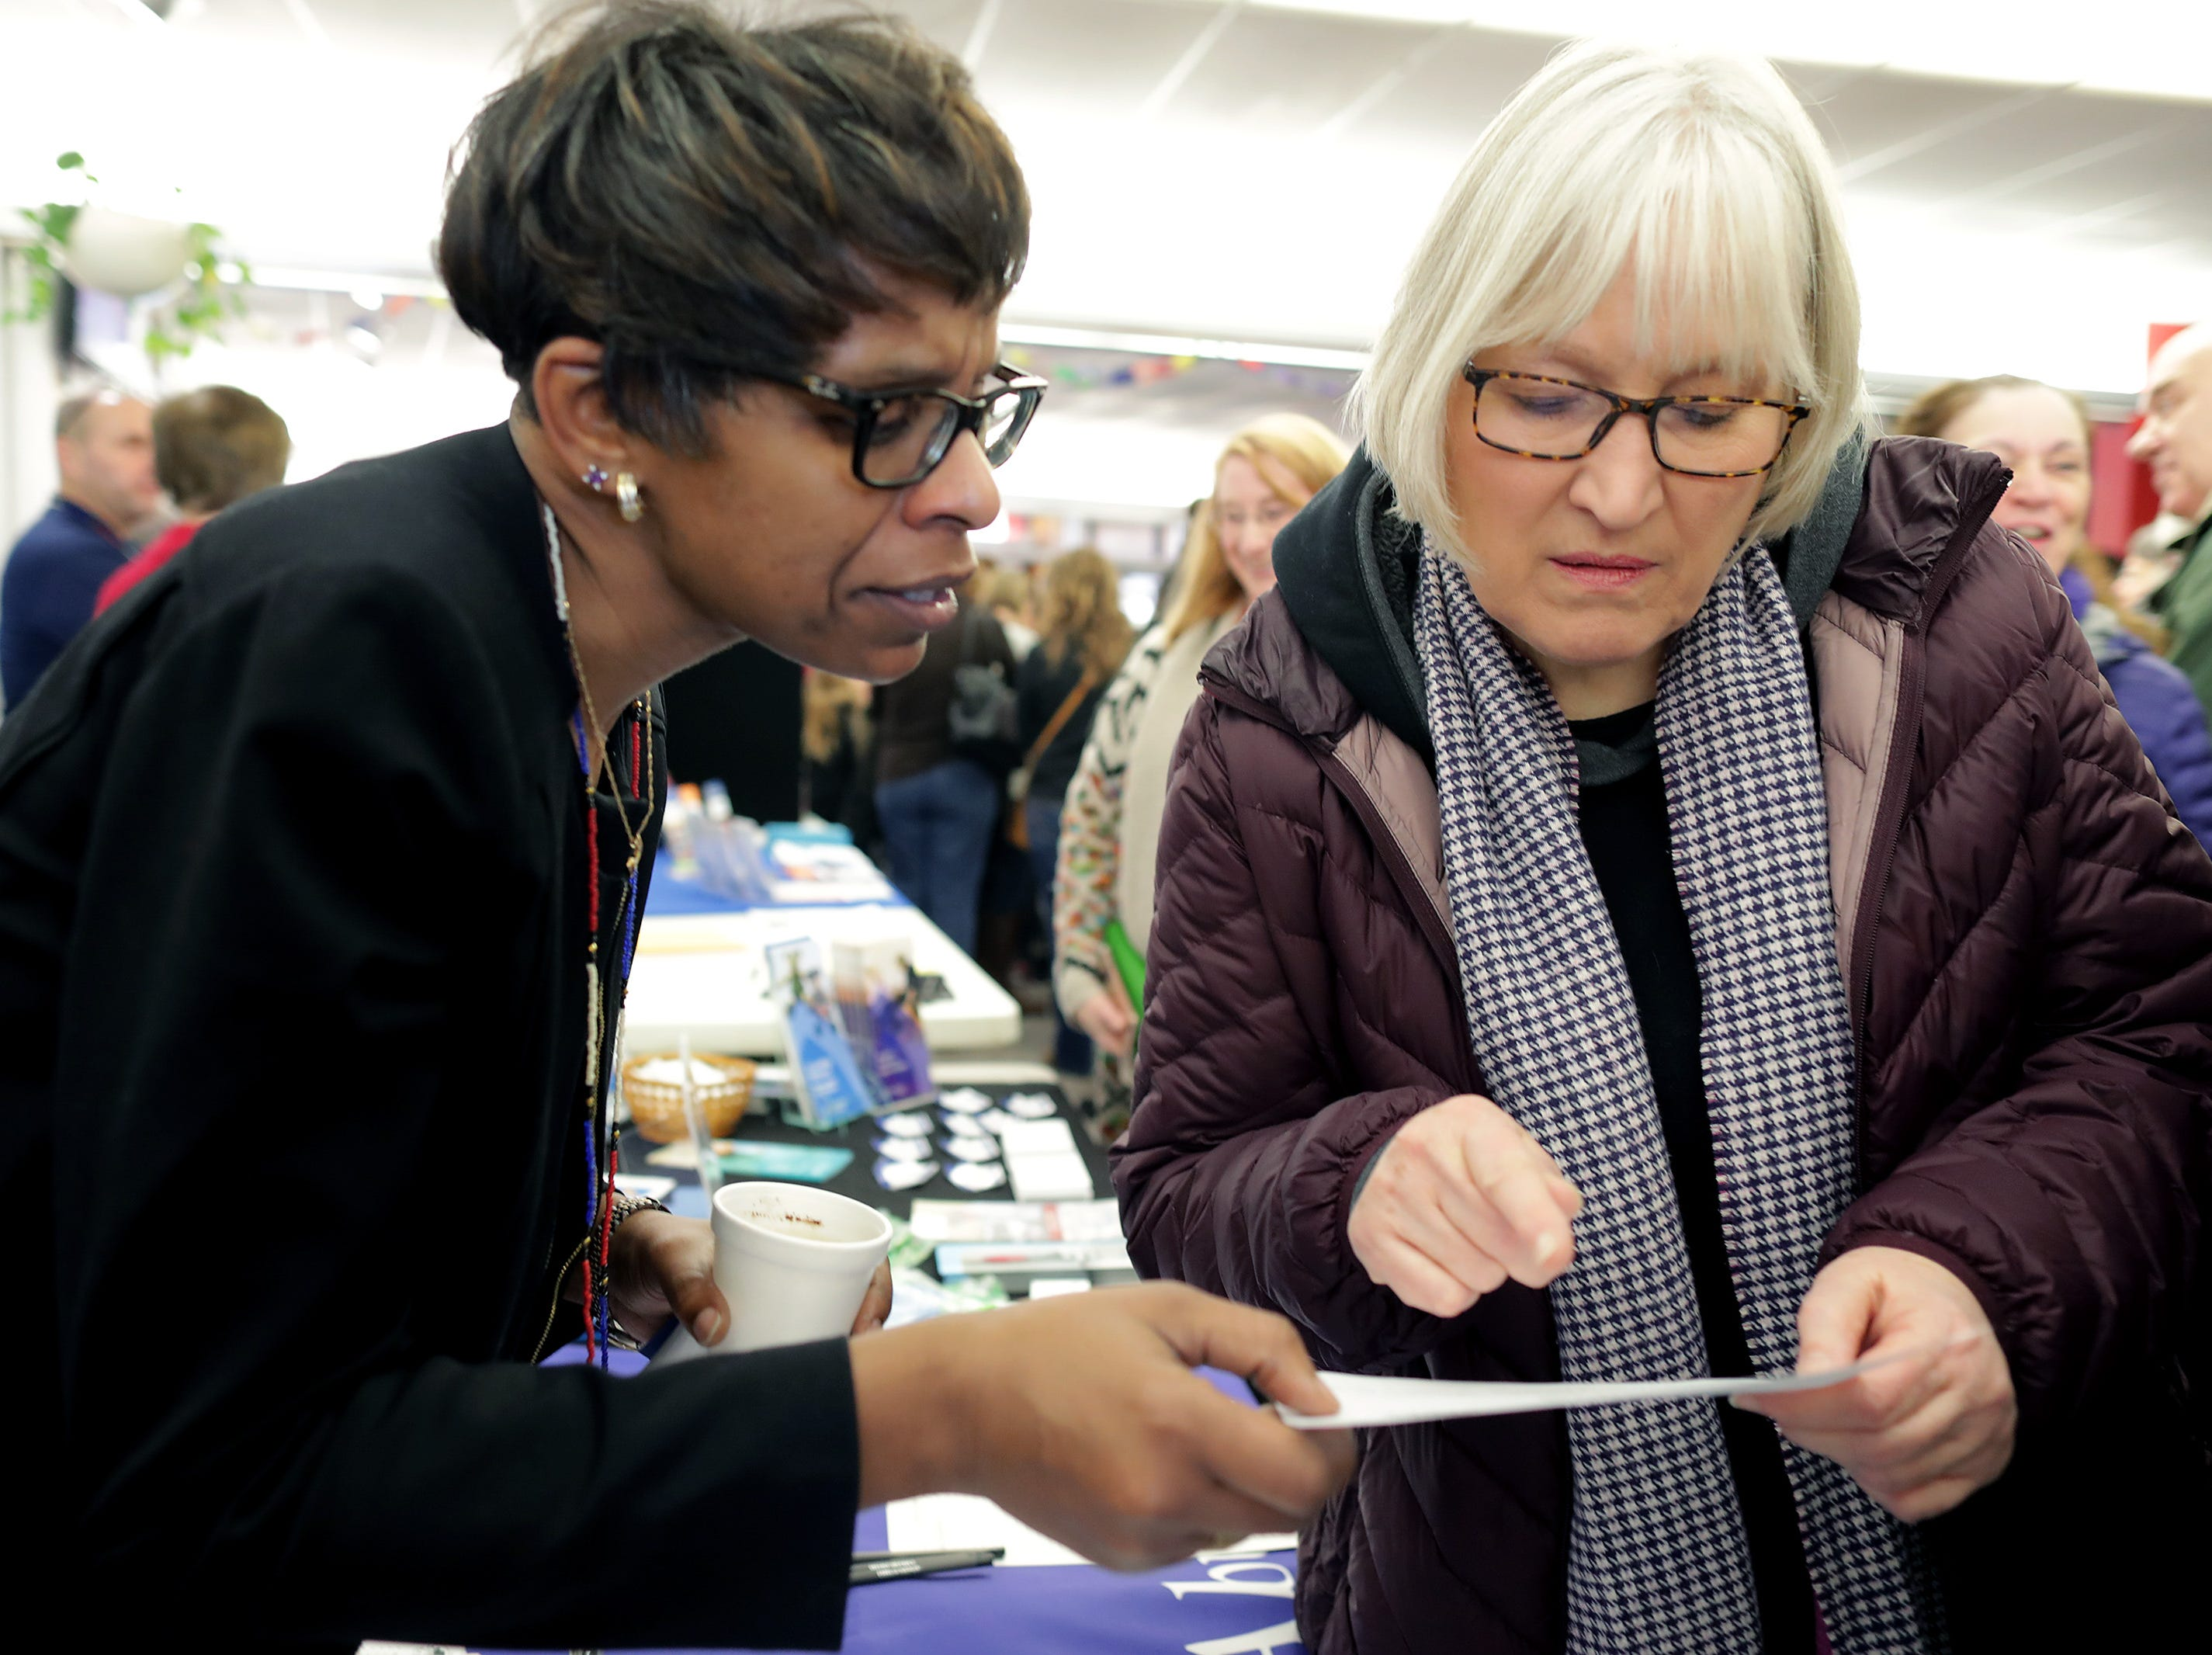 B.A.B.E.S. Inc. Child Abuse Prevention Program Pastor Mahnie Williams shares information with Barb Spaude duriong the first annual MLK Community Day of Service celebration on Monday, January 21, 2019, at Appleton East High School in Appleton, Wis.